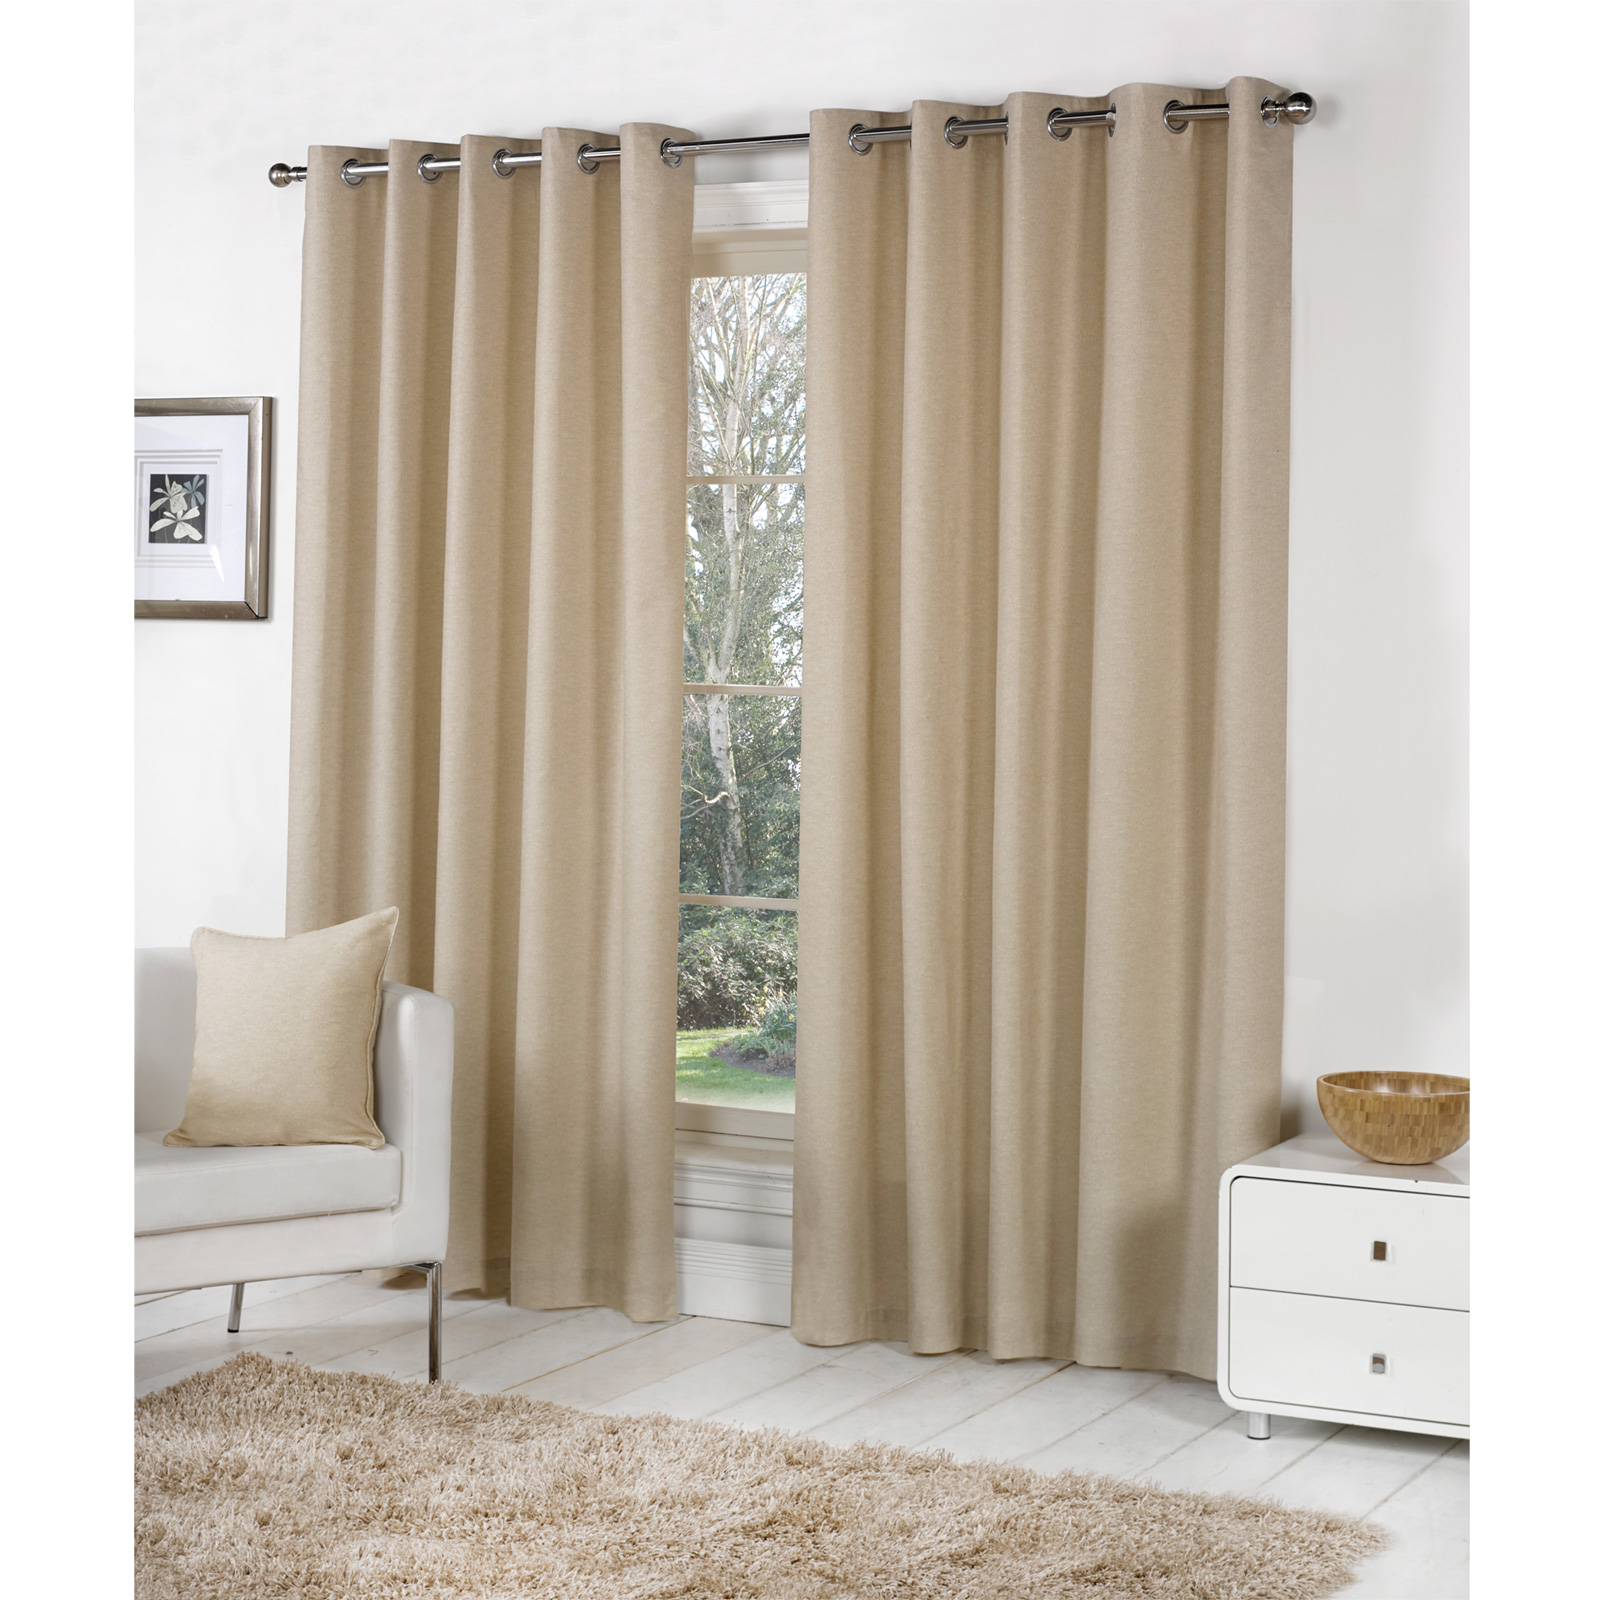 Plain dyed cotton curtain pair ready made fully lined for Living room curtains 90x90